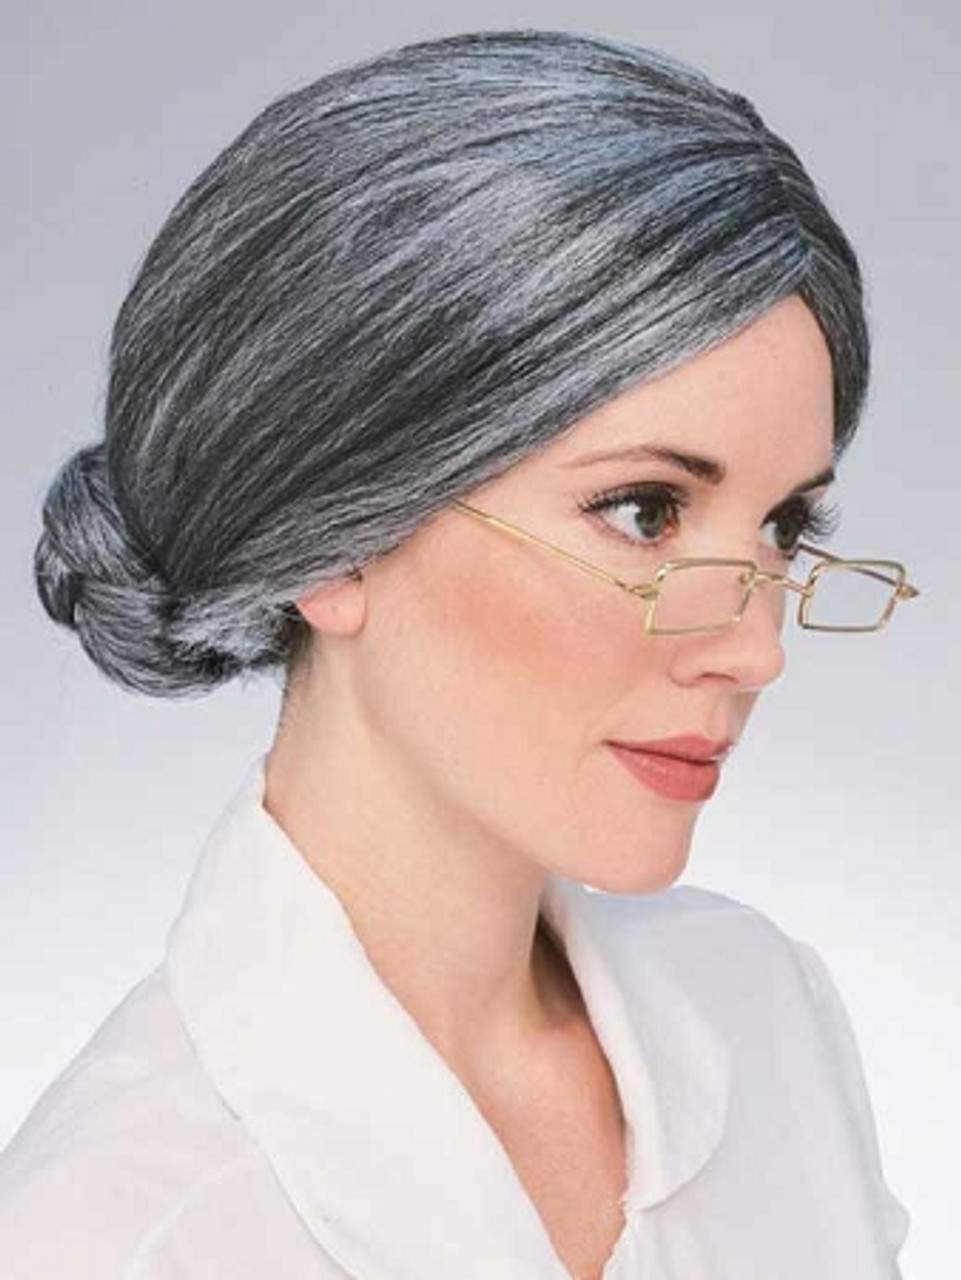 Deluxe Old Lady Wig Grey Hair in a Bun